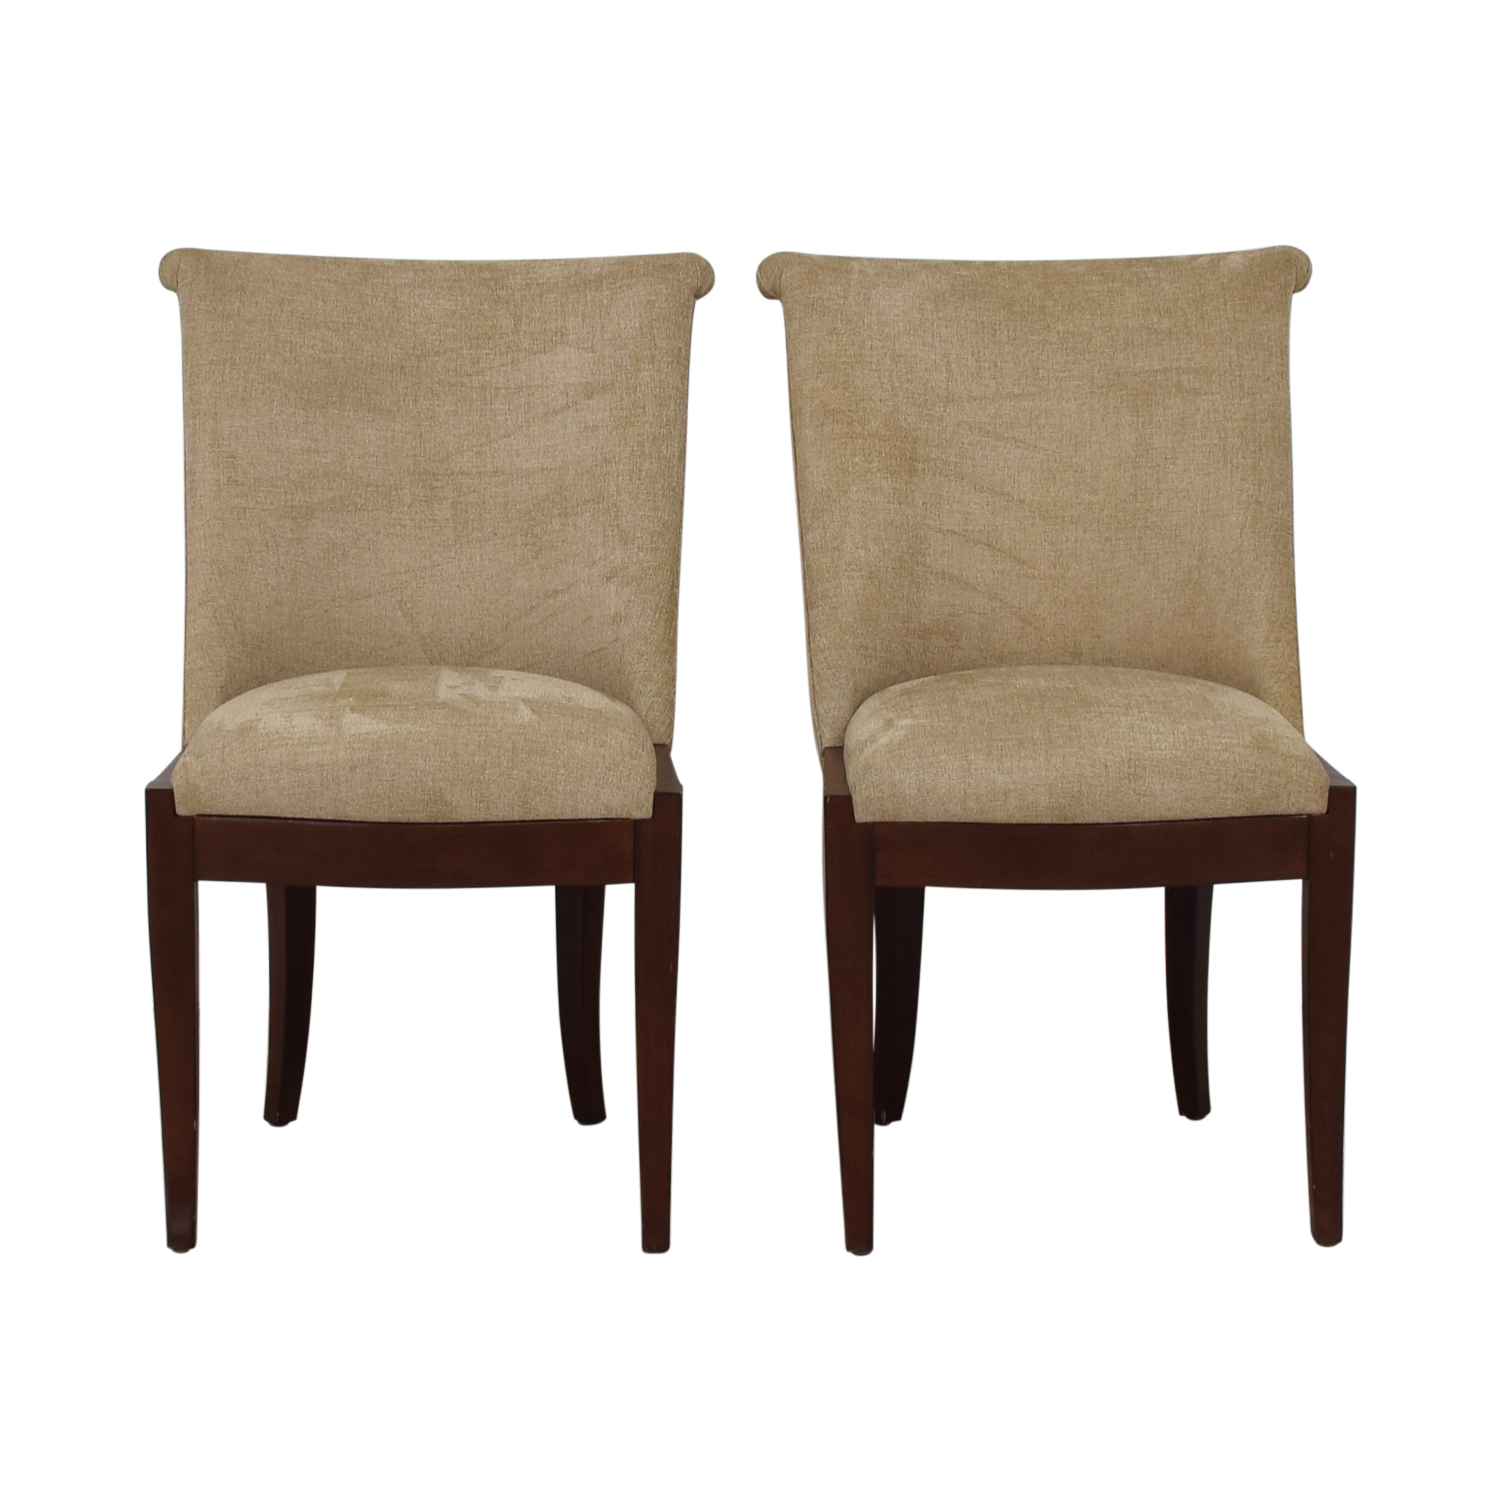 Furniture Masters Furniture Masters Tan Upholstered Chairs on sale